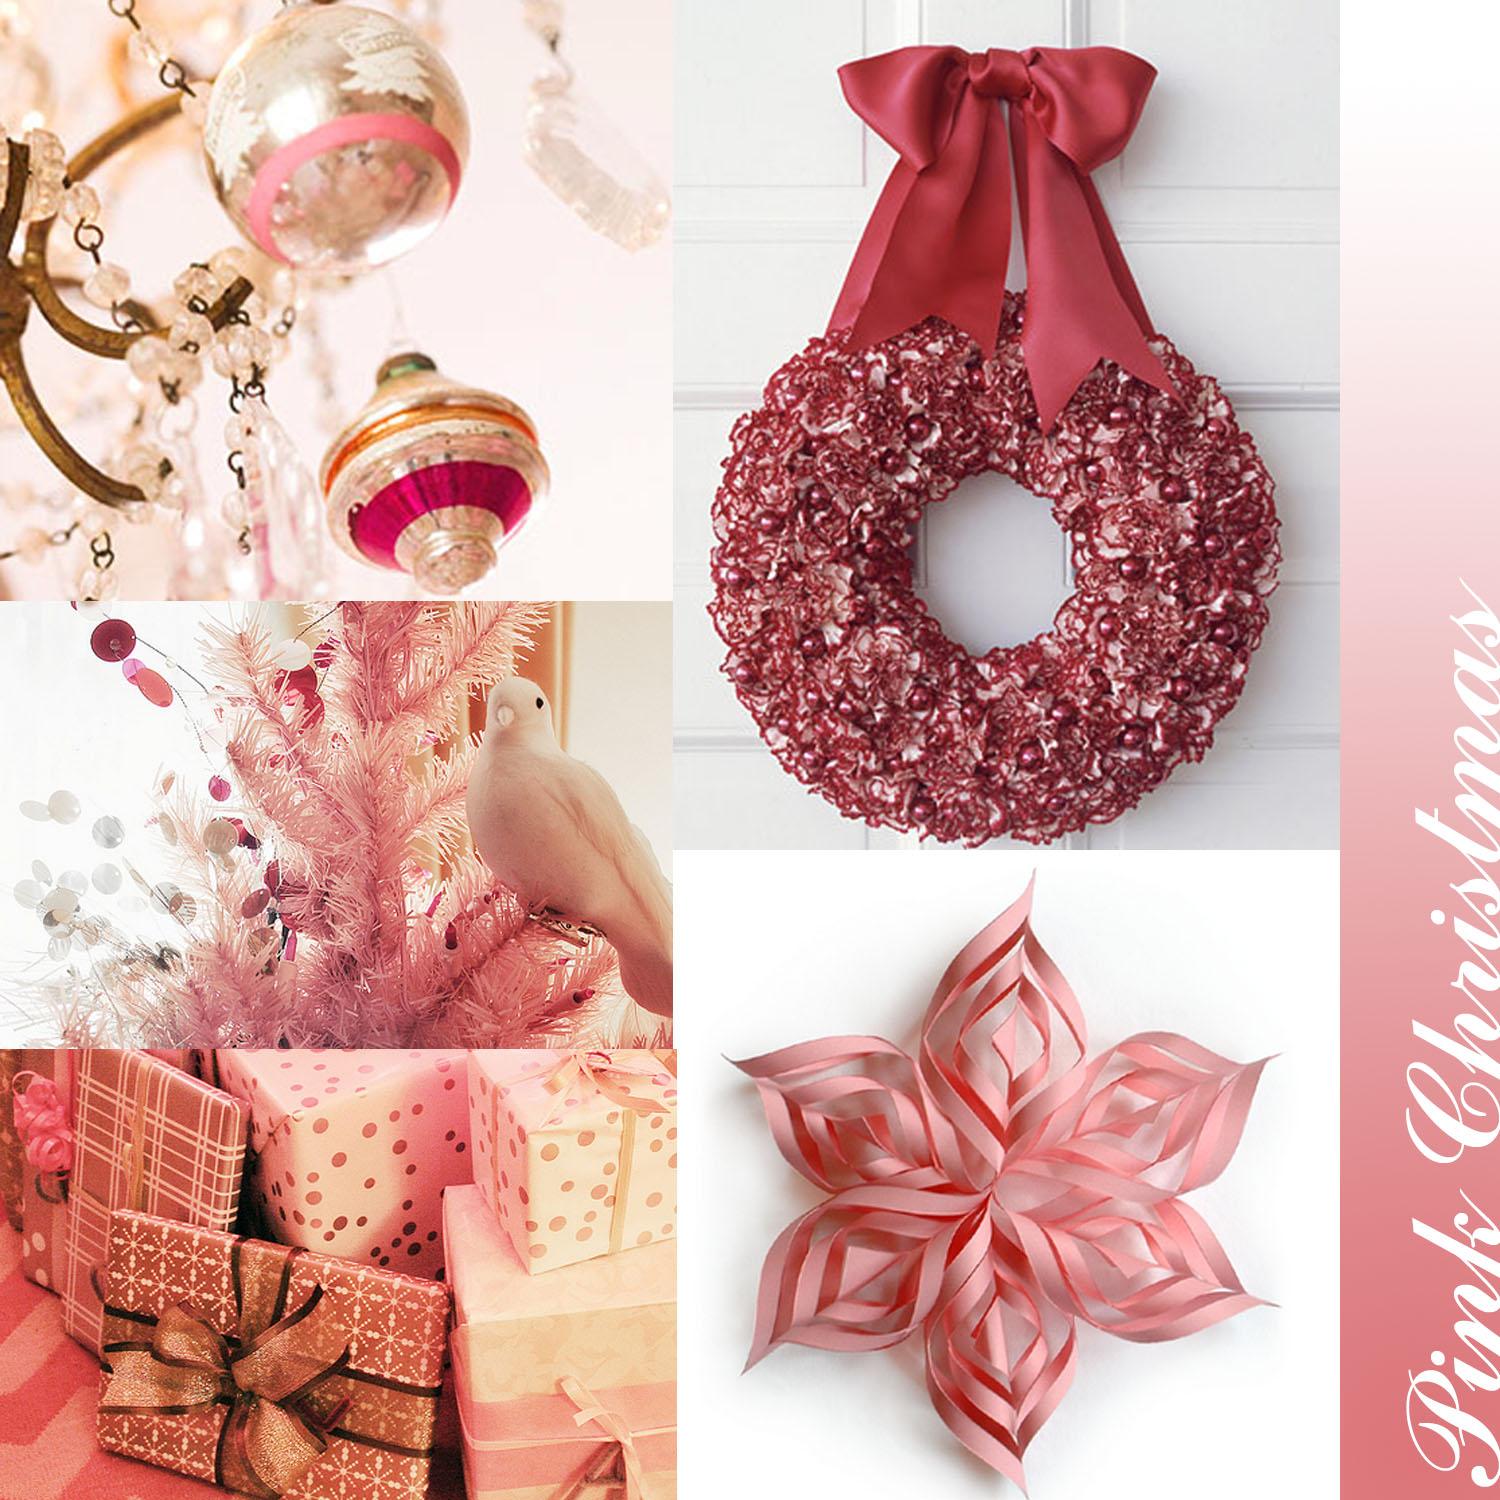 DREAMING OF A PINK CHRISTMAS FRENCH COUNTRY COTTAGE